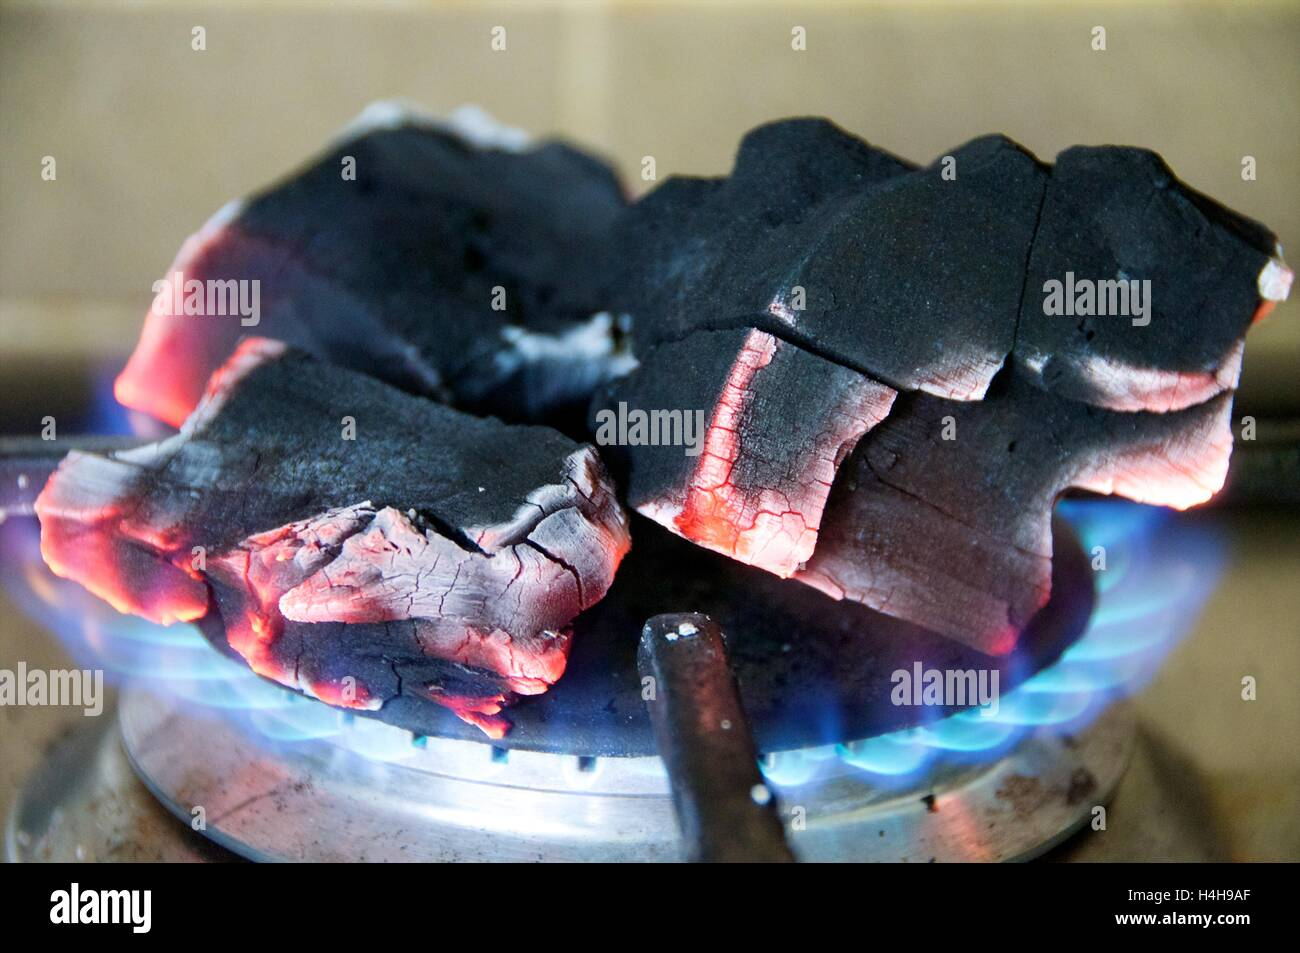 Charcoal burning over gas ring - Stock Image